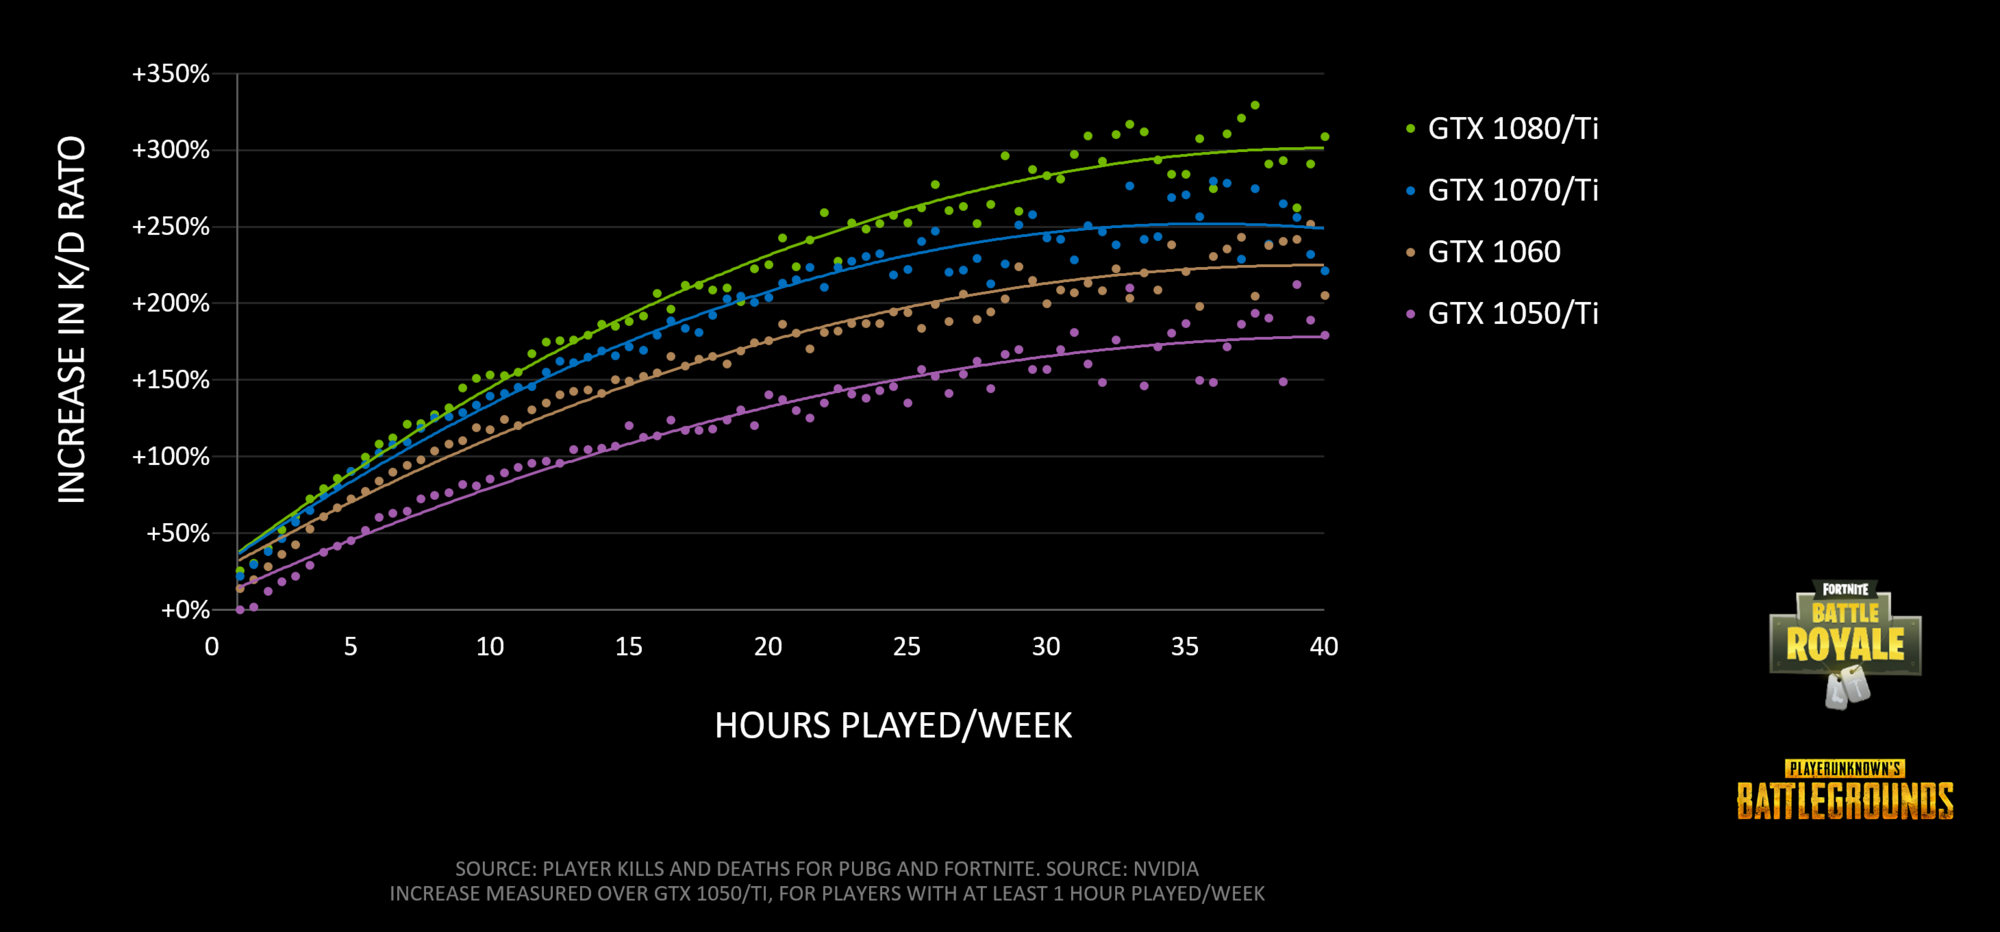 battle-royale-fortnite-pubg-increase-in-kd-hours.png